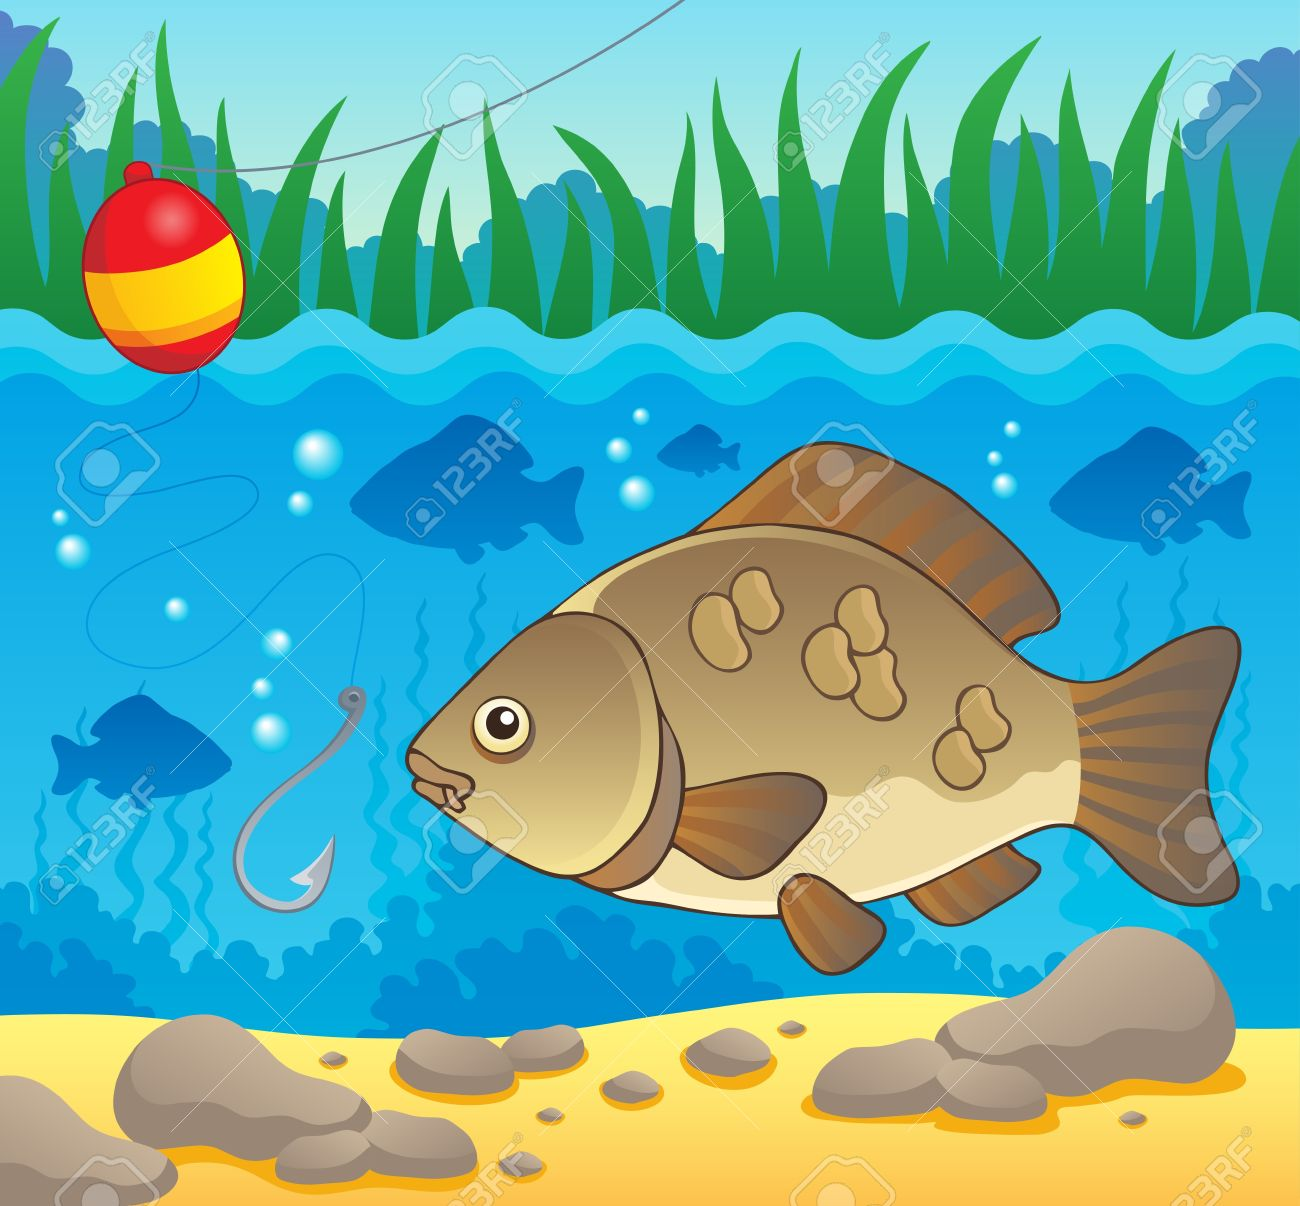 Fishing in river clipart